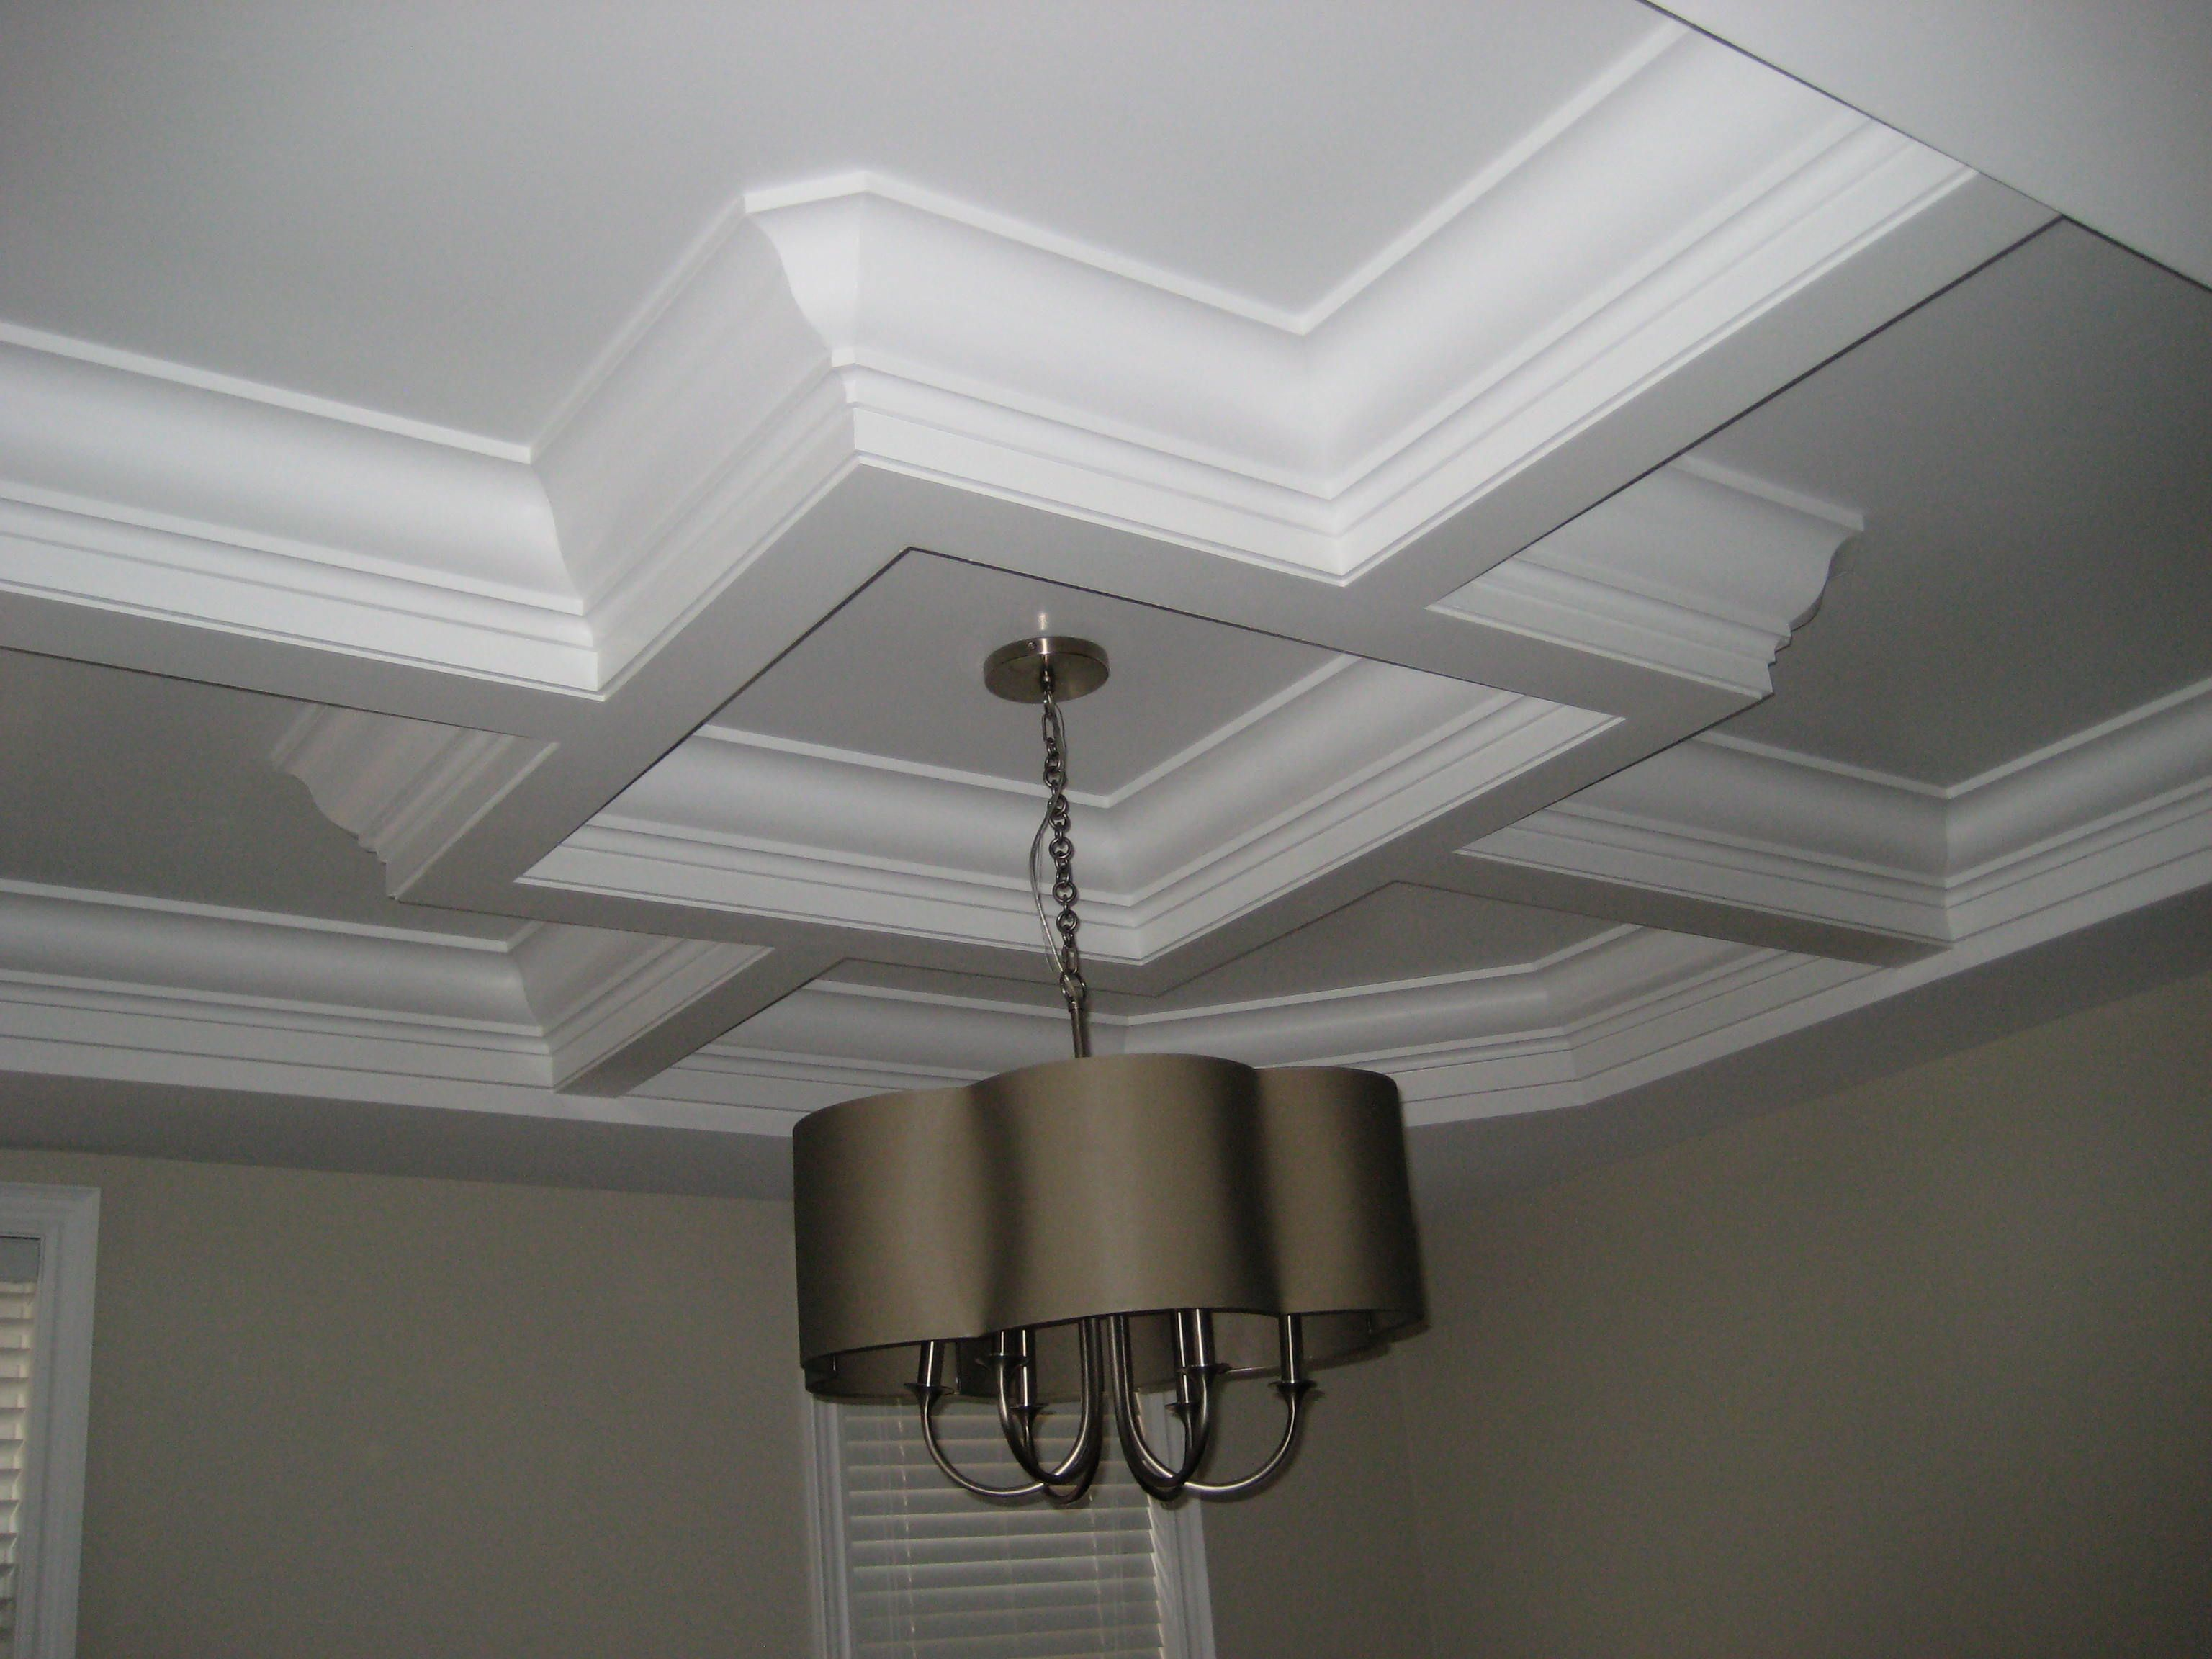 Waffle Ceiling Dining Room 7 Georgian Crown Moulding Installed Within Each Box Awesome